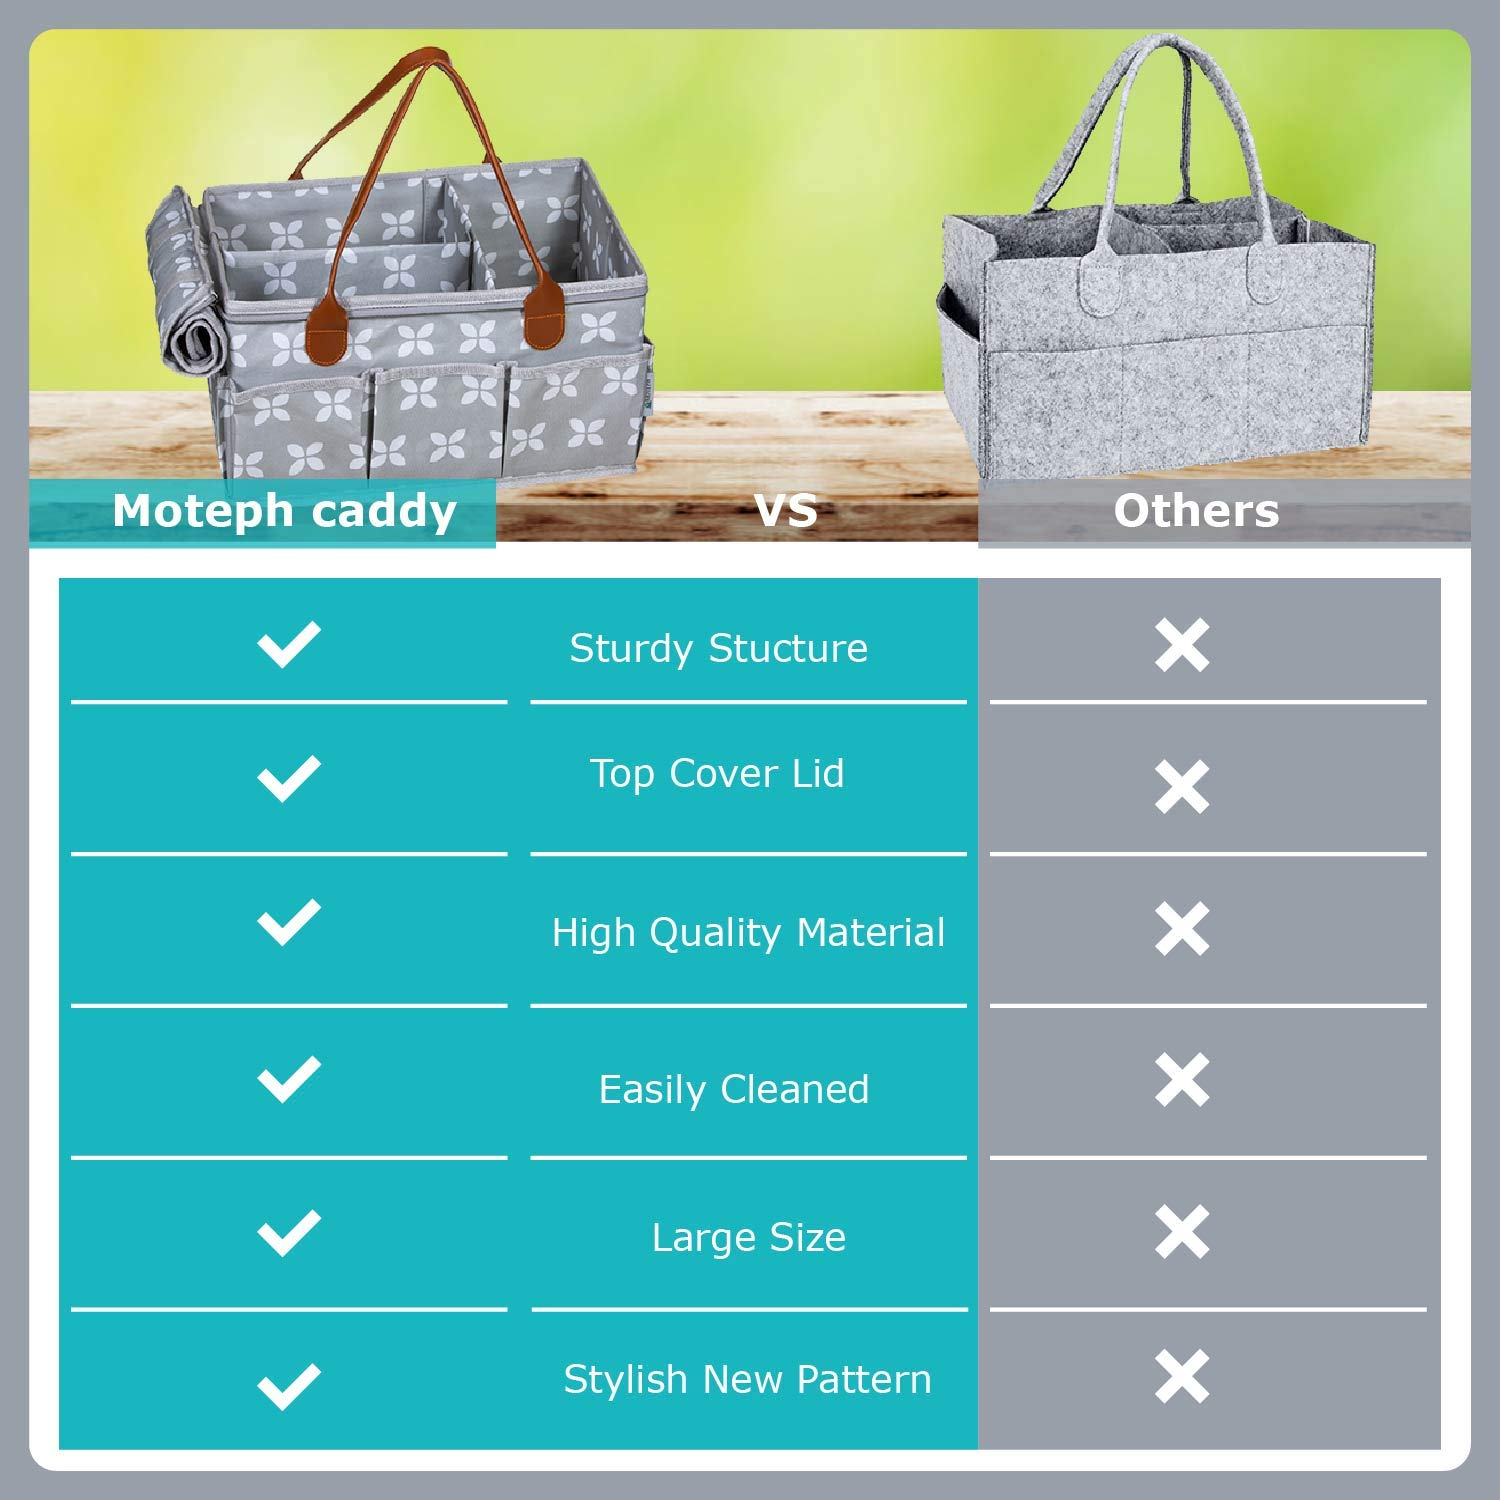 661c083272ae Moteph Extra Large Diaper Caddy Organizer with Zip-Top Cover with 2 Extra  Items -...